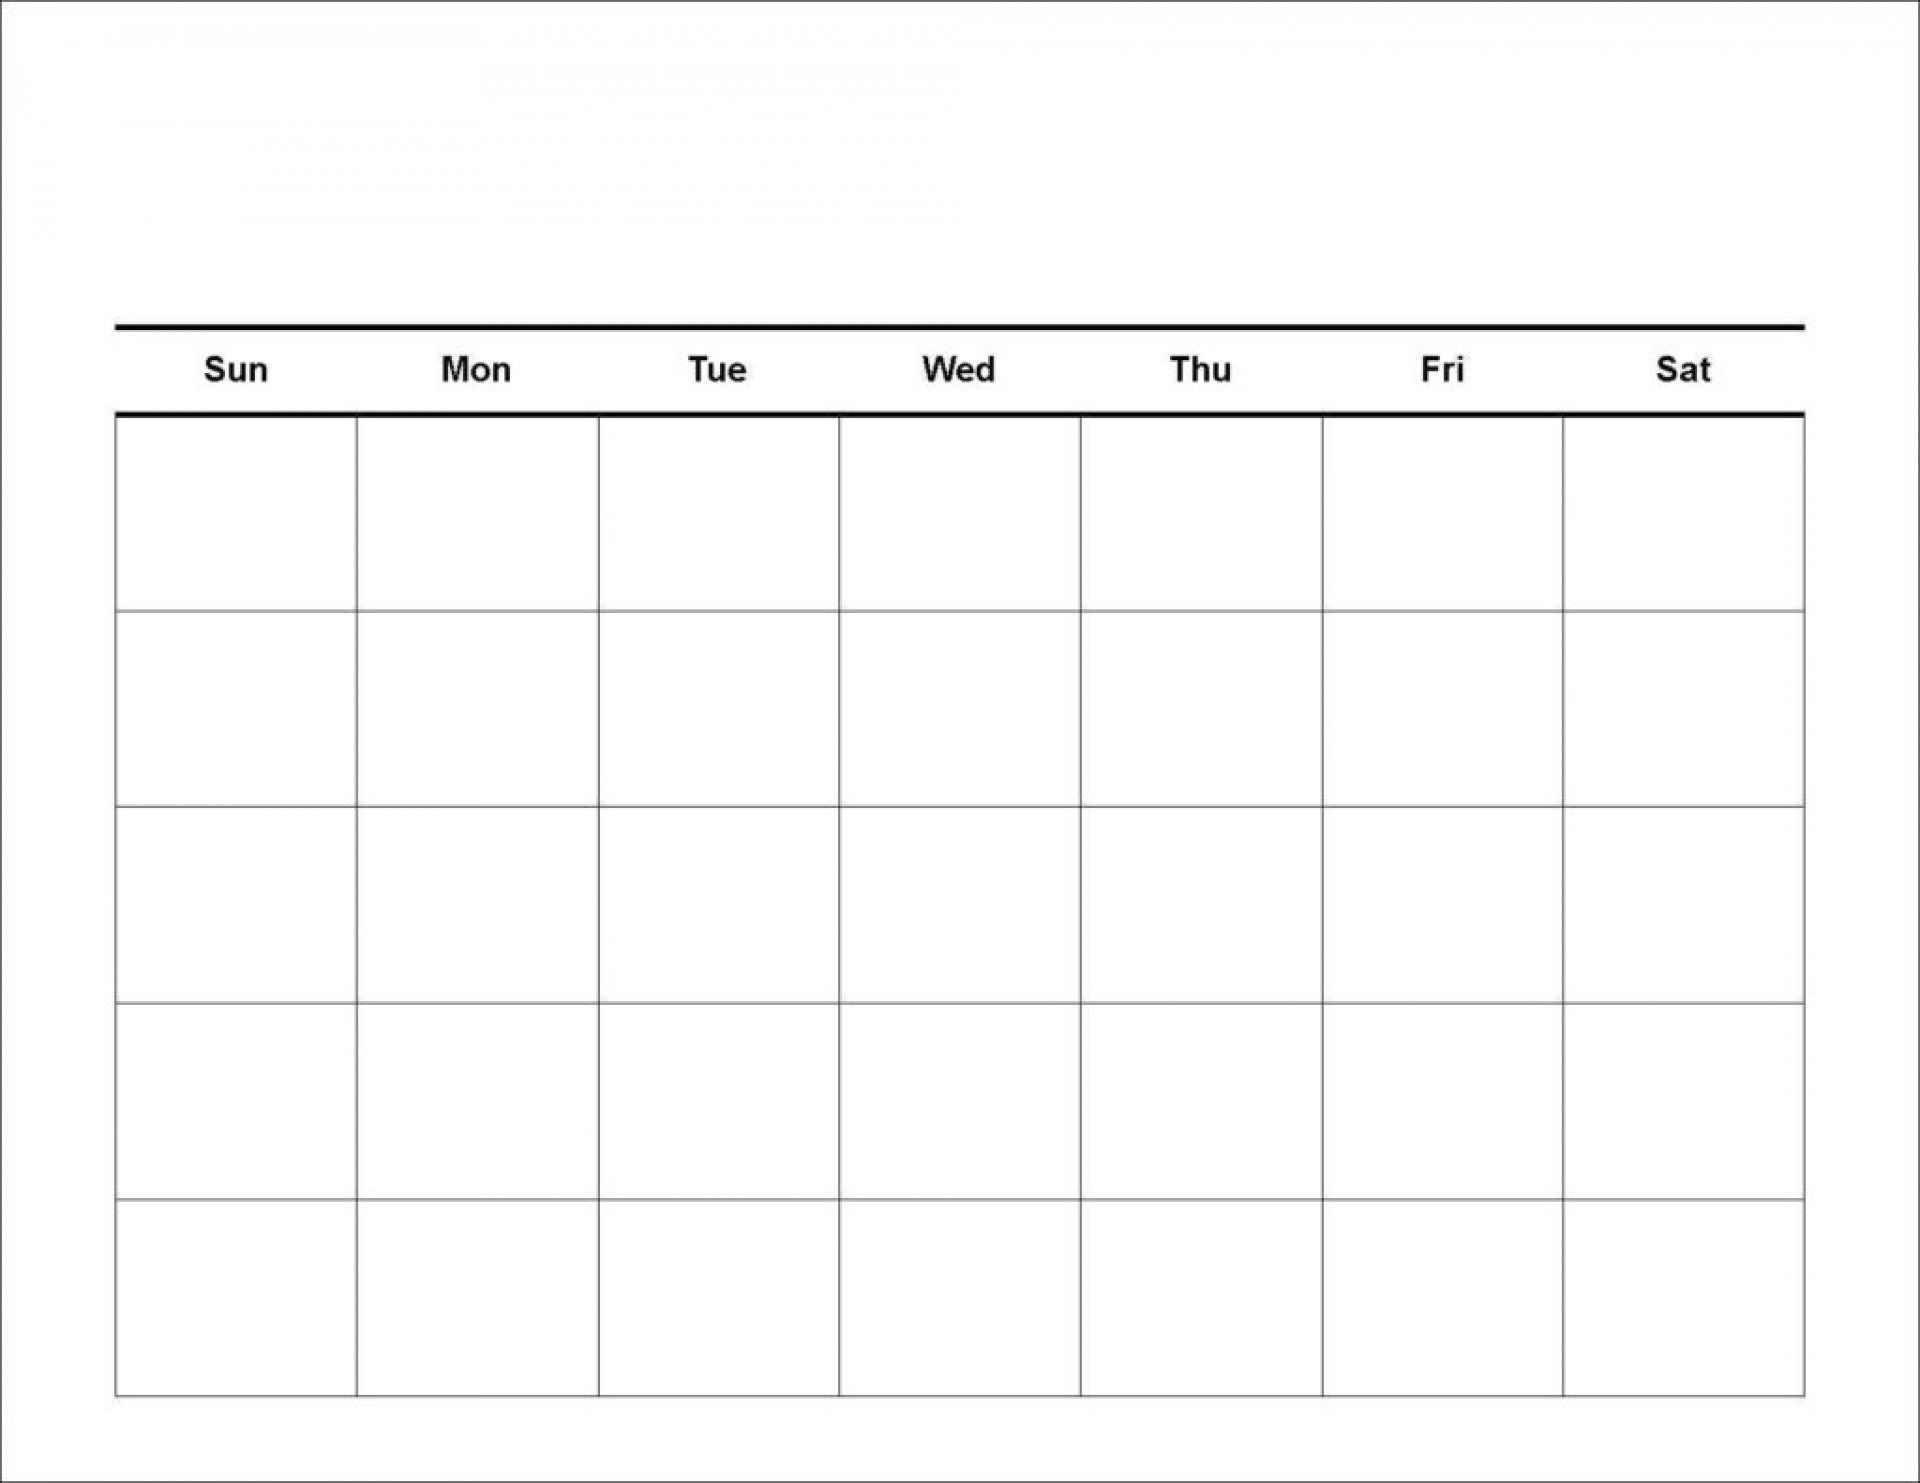 002 Beautiful Employee Schedule Template Free Image  Downloadable Weekly Work Training Excel ShiftFull